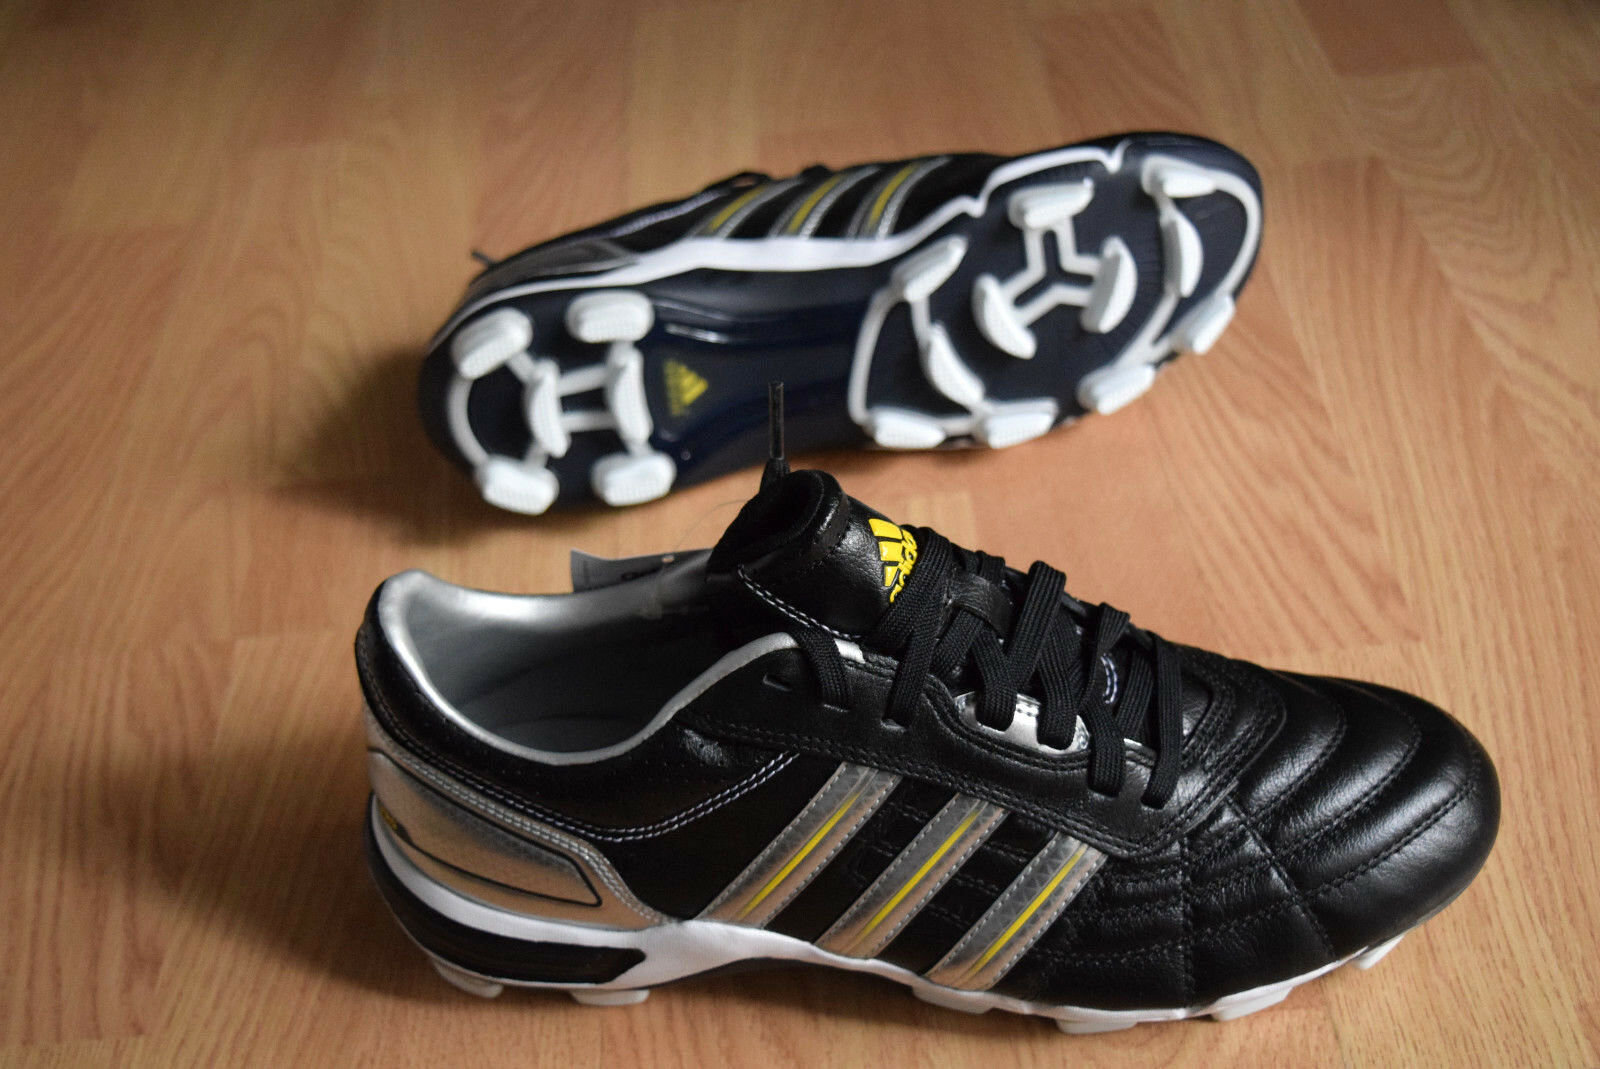 Adidas 118 pro 40 41 43 44 45 47 48 49 Rugby Leather G18262 Grass Rugby schuhe Fg